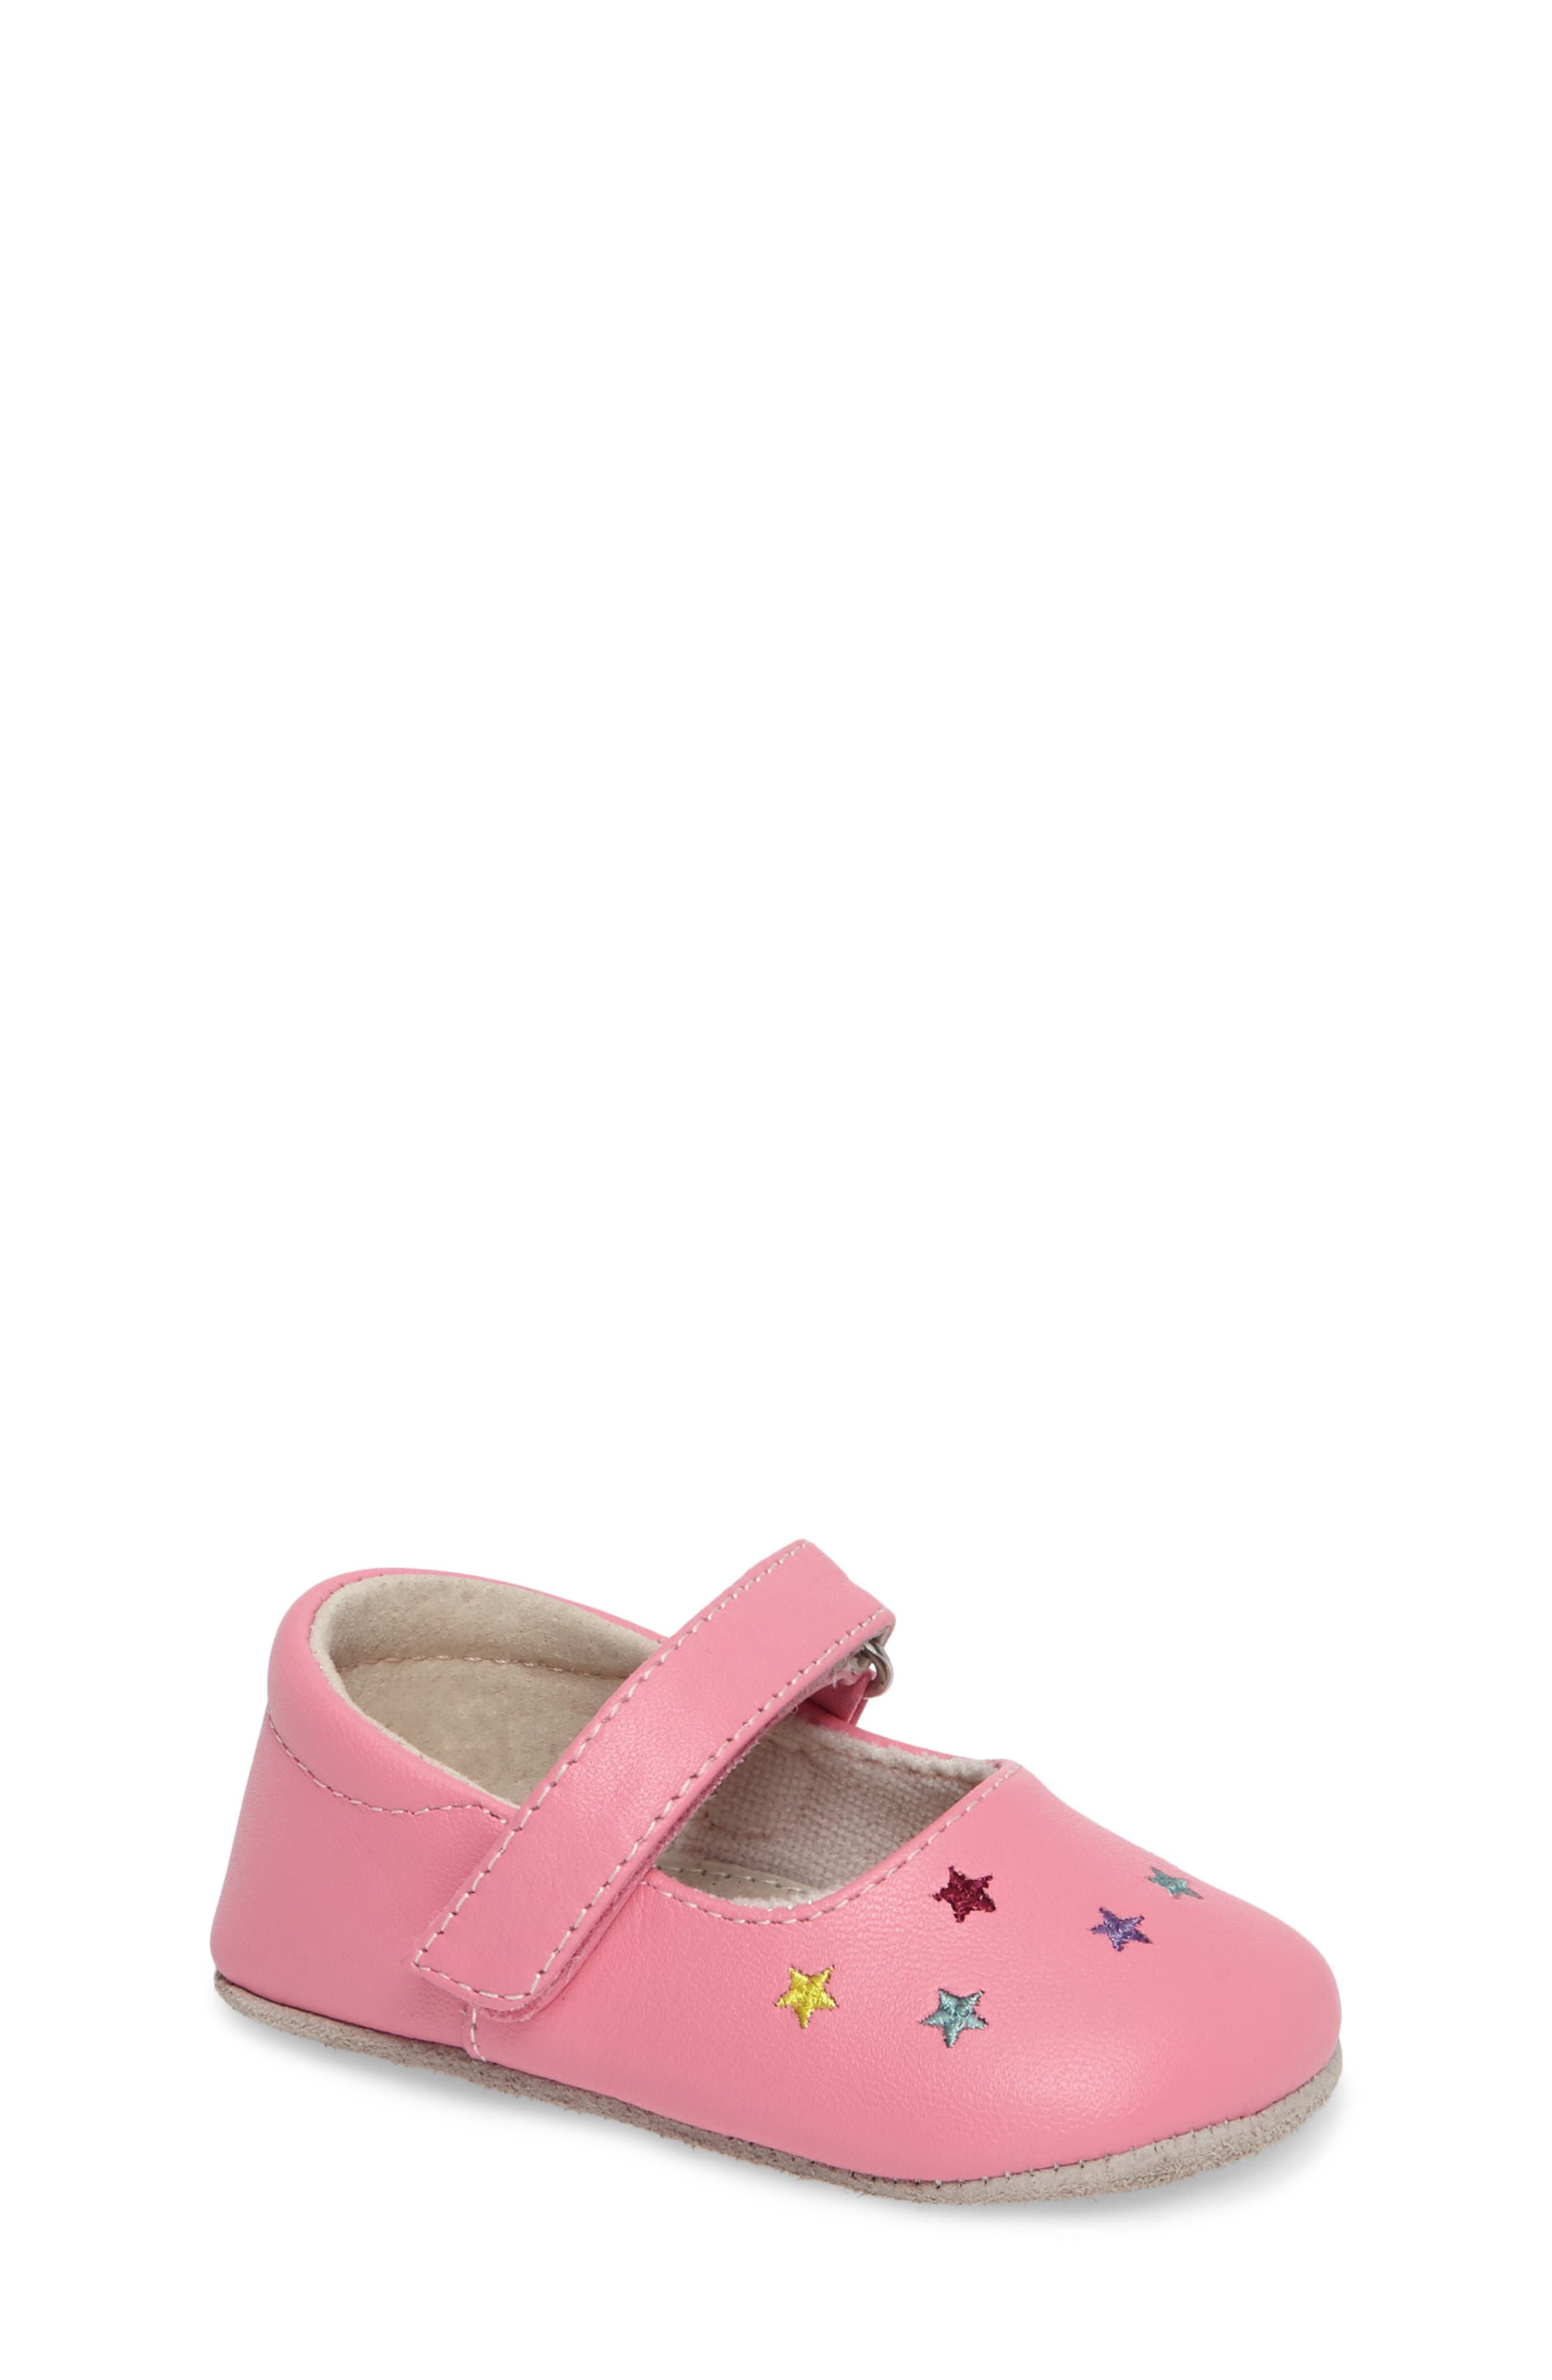 See Kai Run Harriet Mary Jane Crib Shoe (Baby)